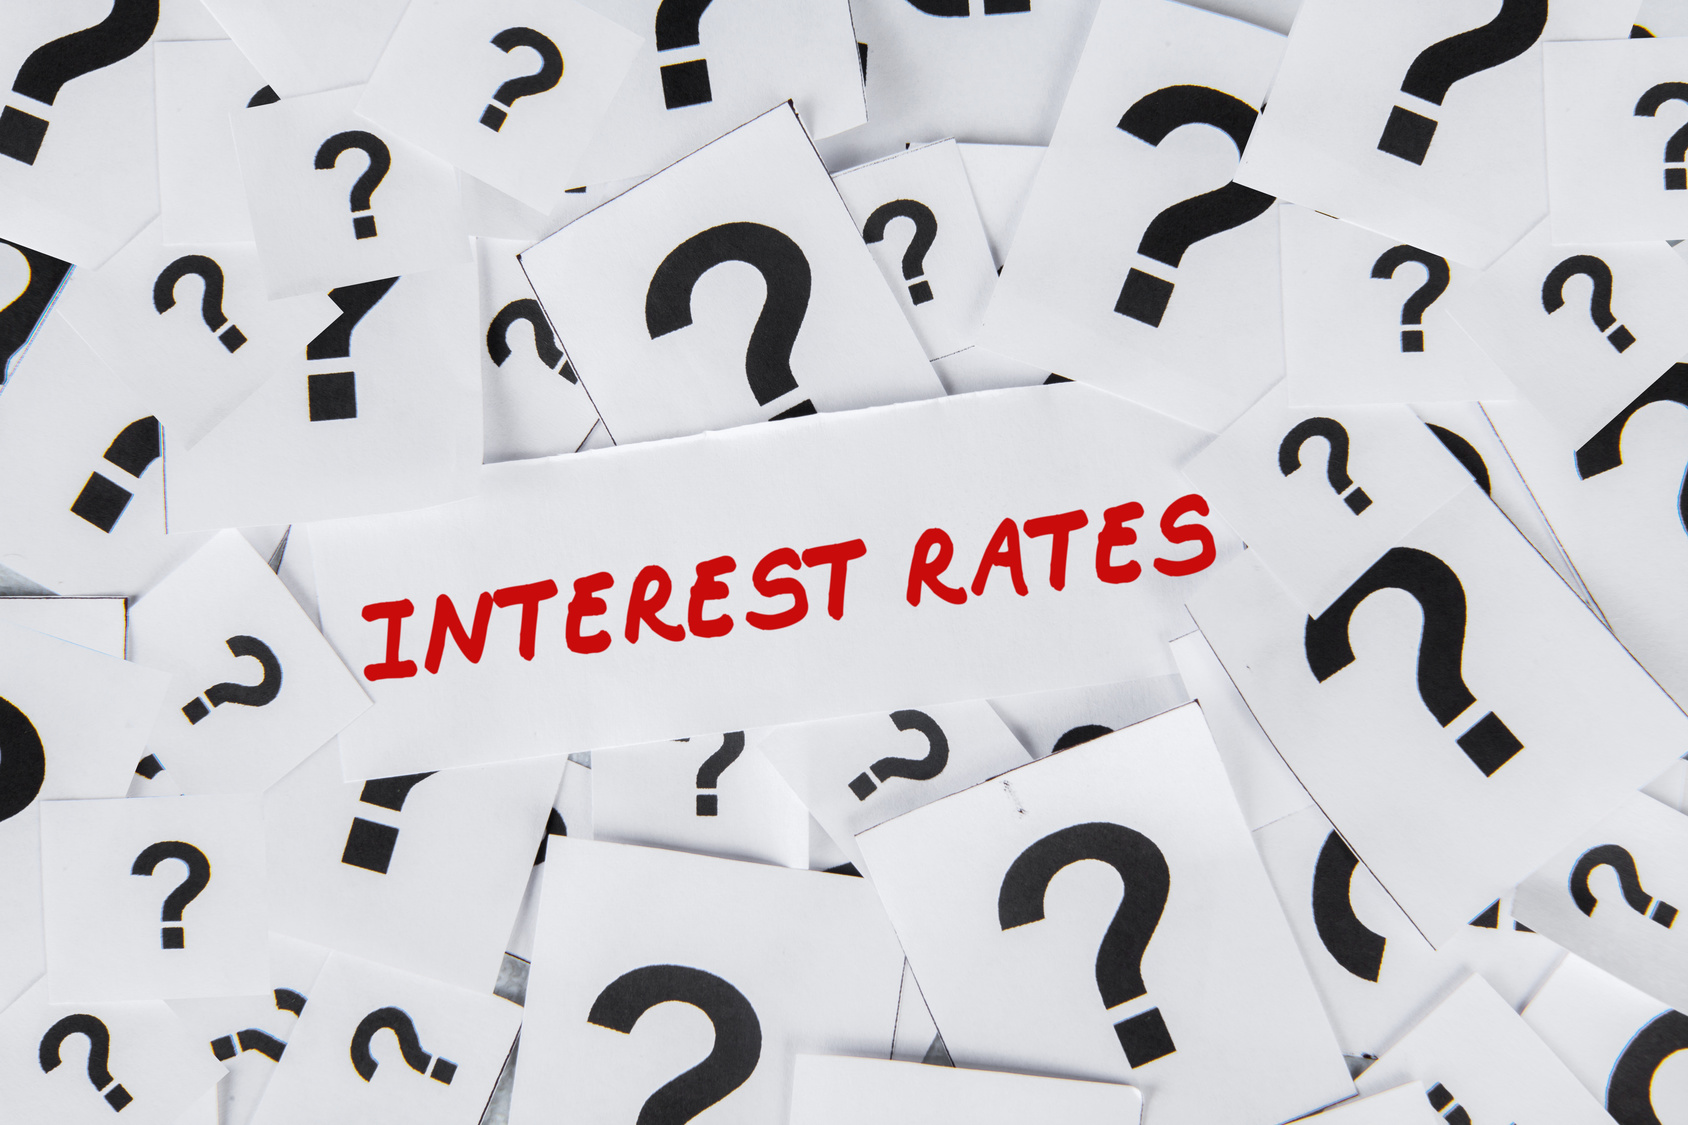 Cheaper Credit Cart Rates As Fed Freezes Benchmark Rates?